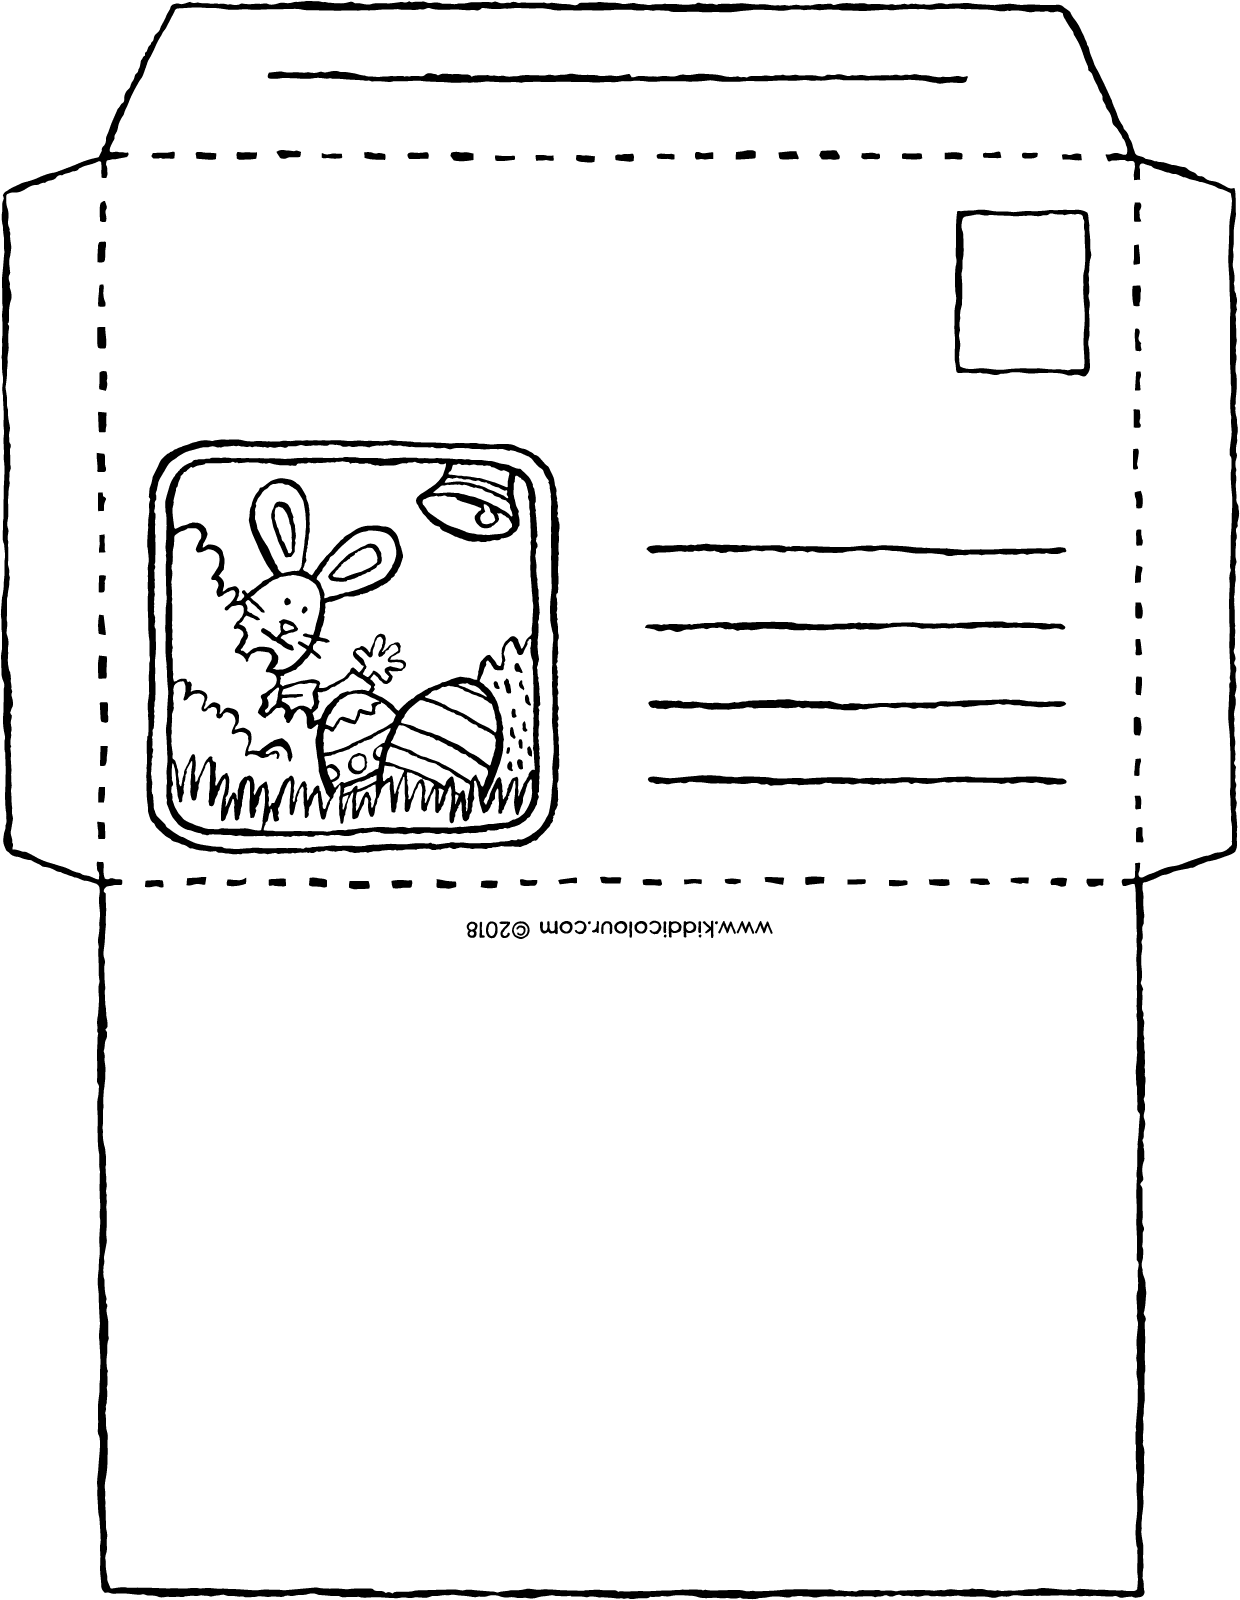 Easter envelope colouring page drawing picture 01k